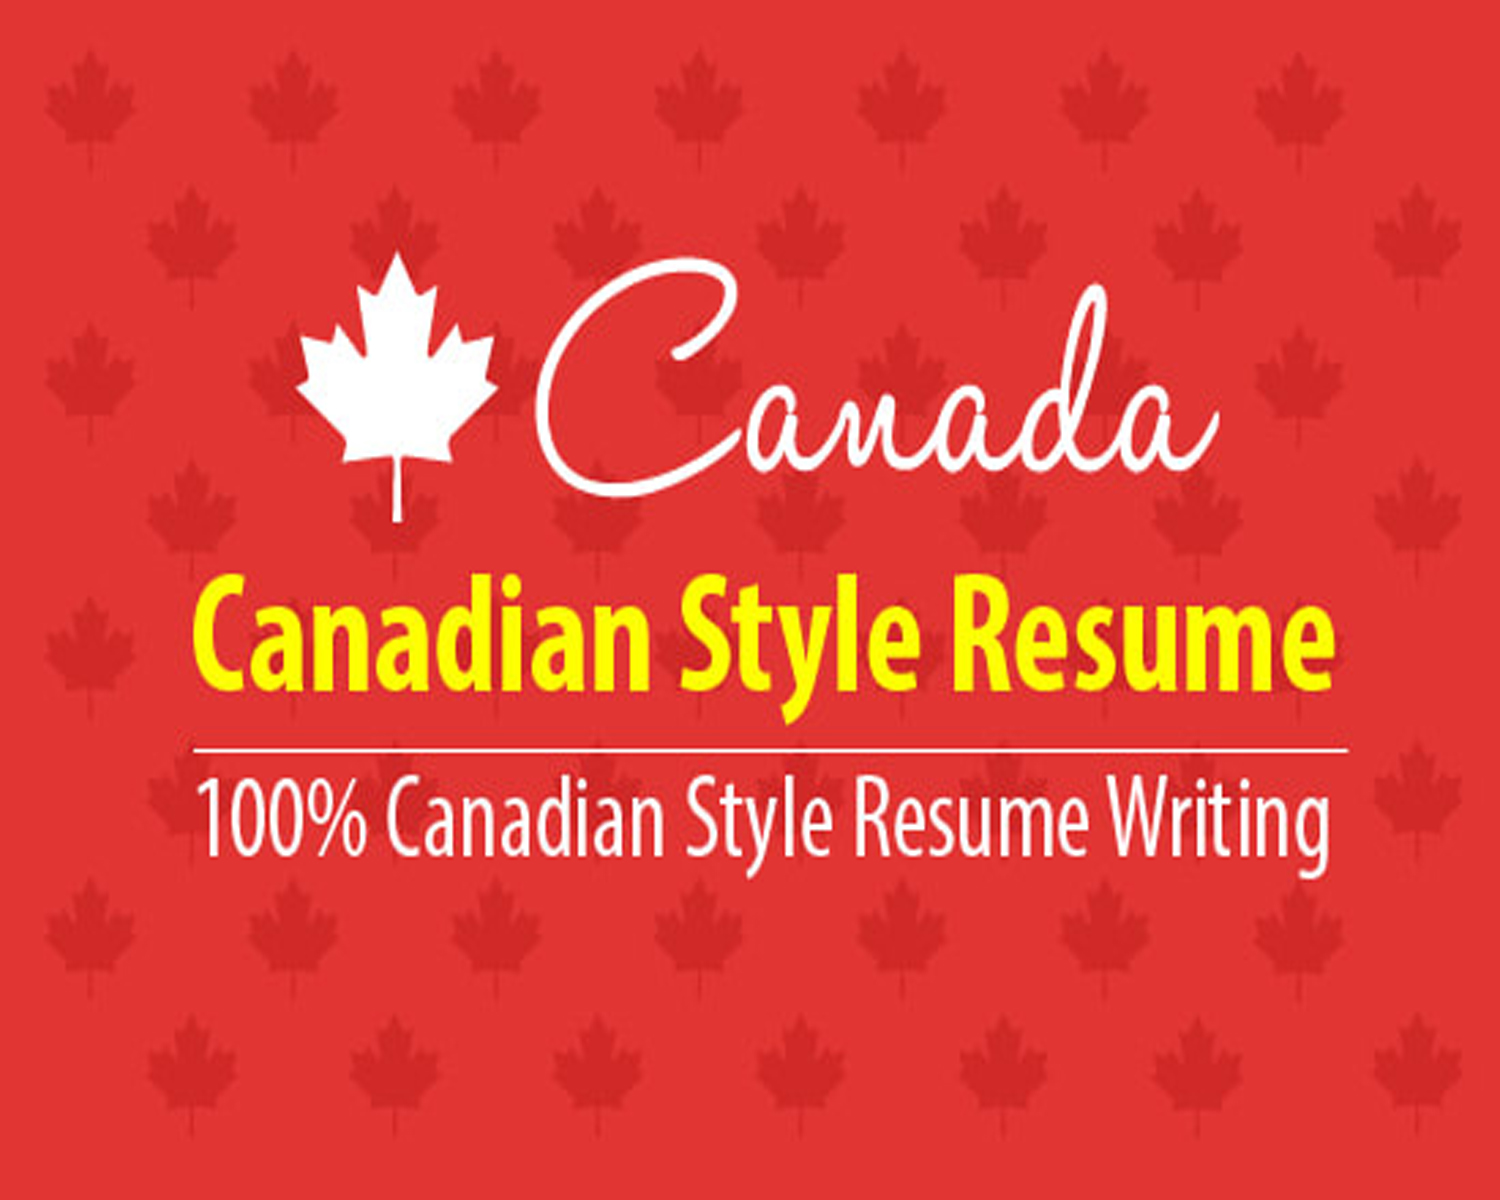 Canadian Style Resume Writing